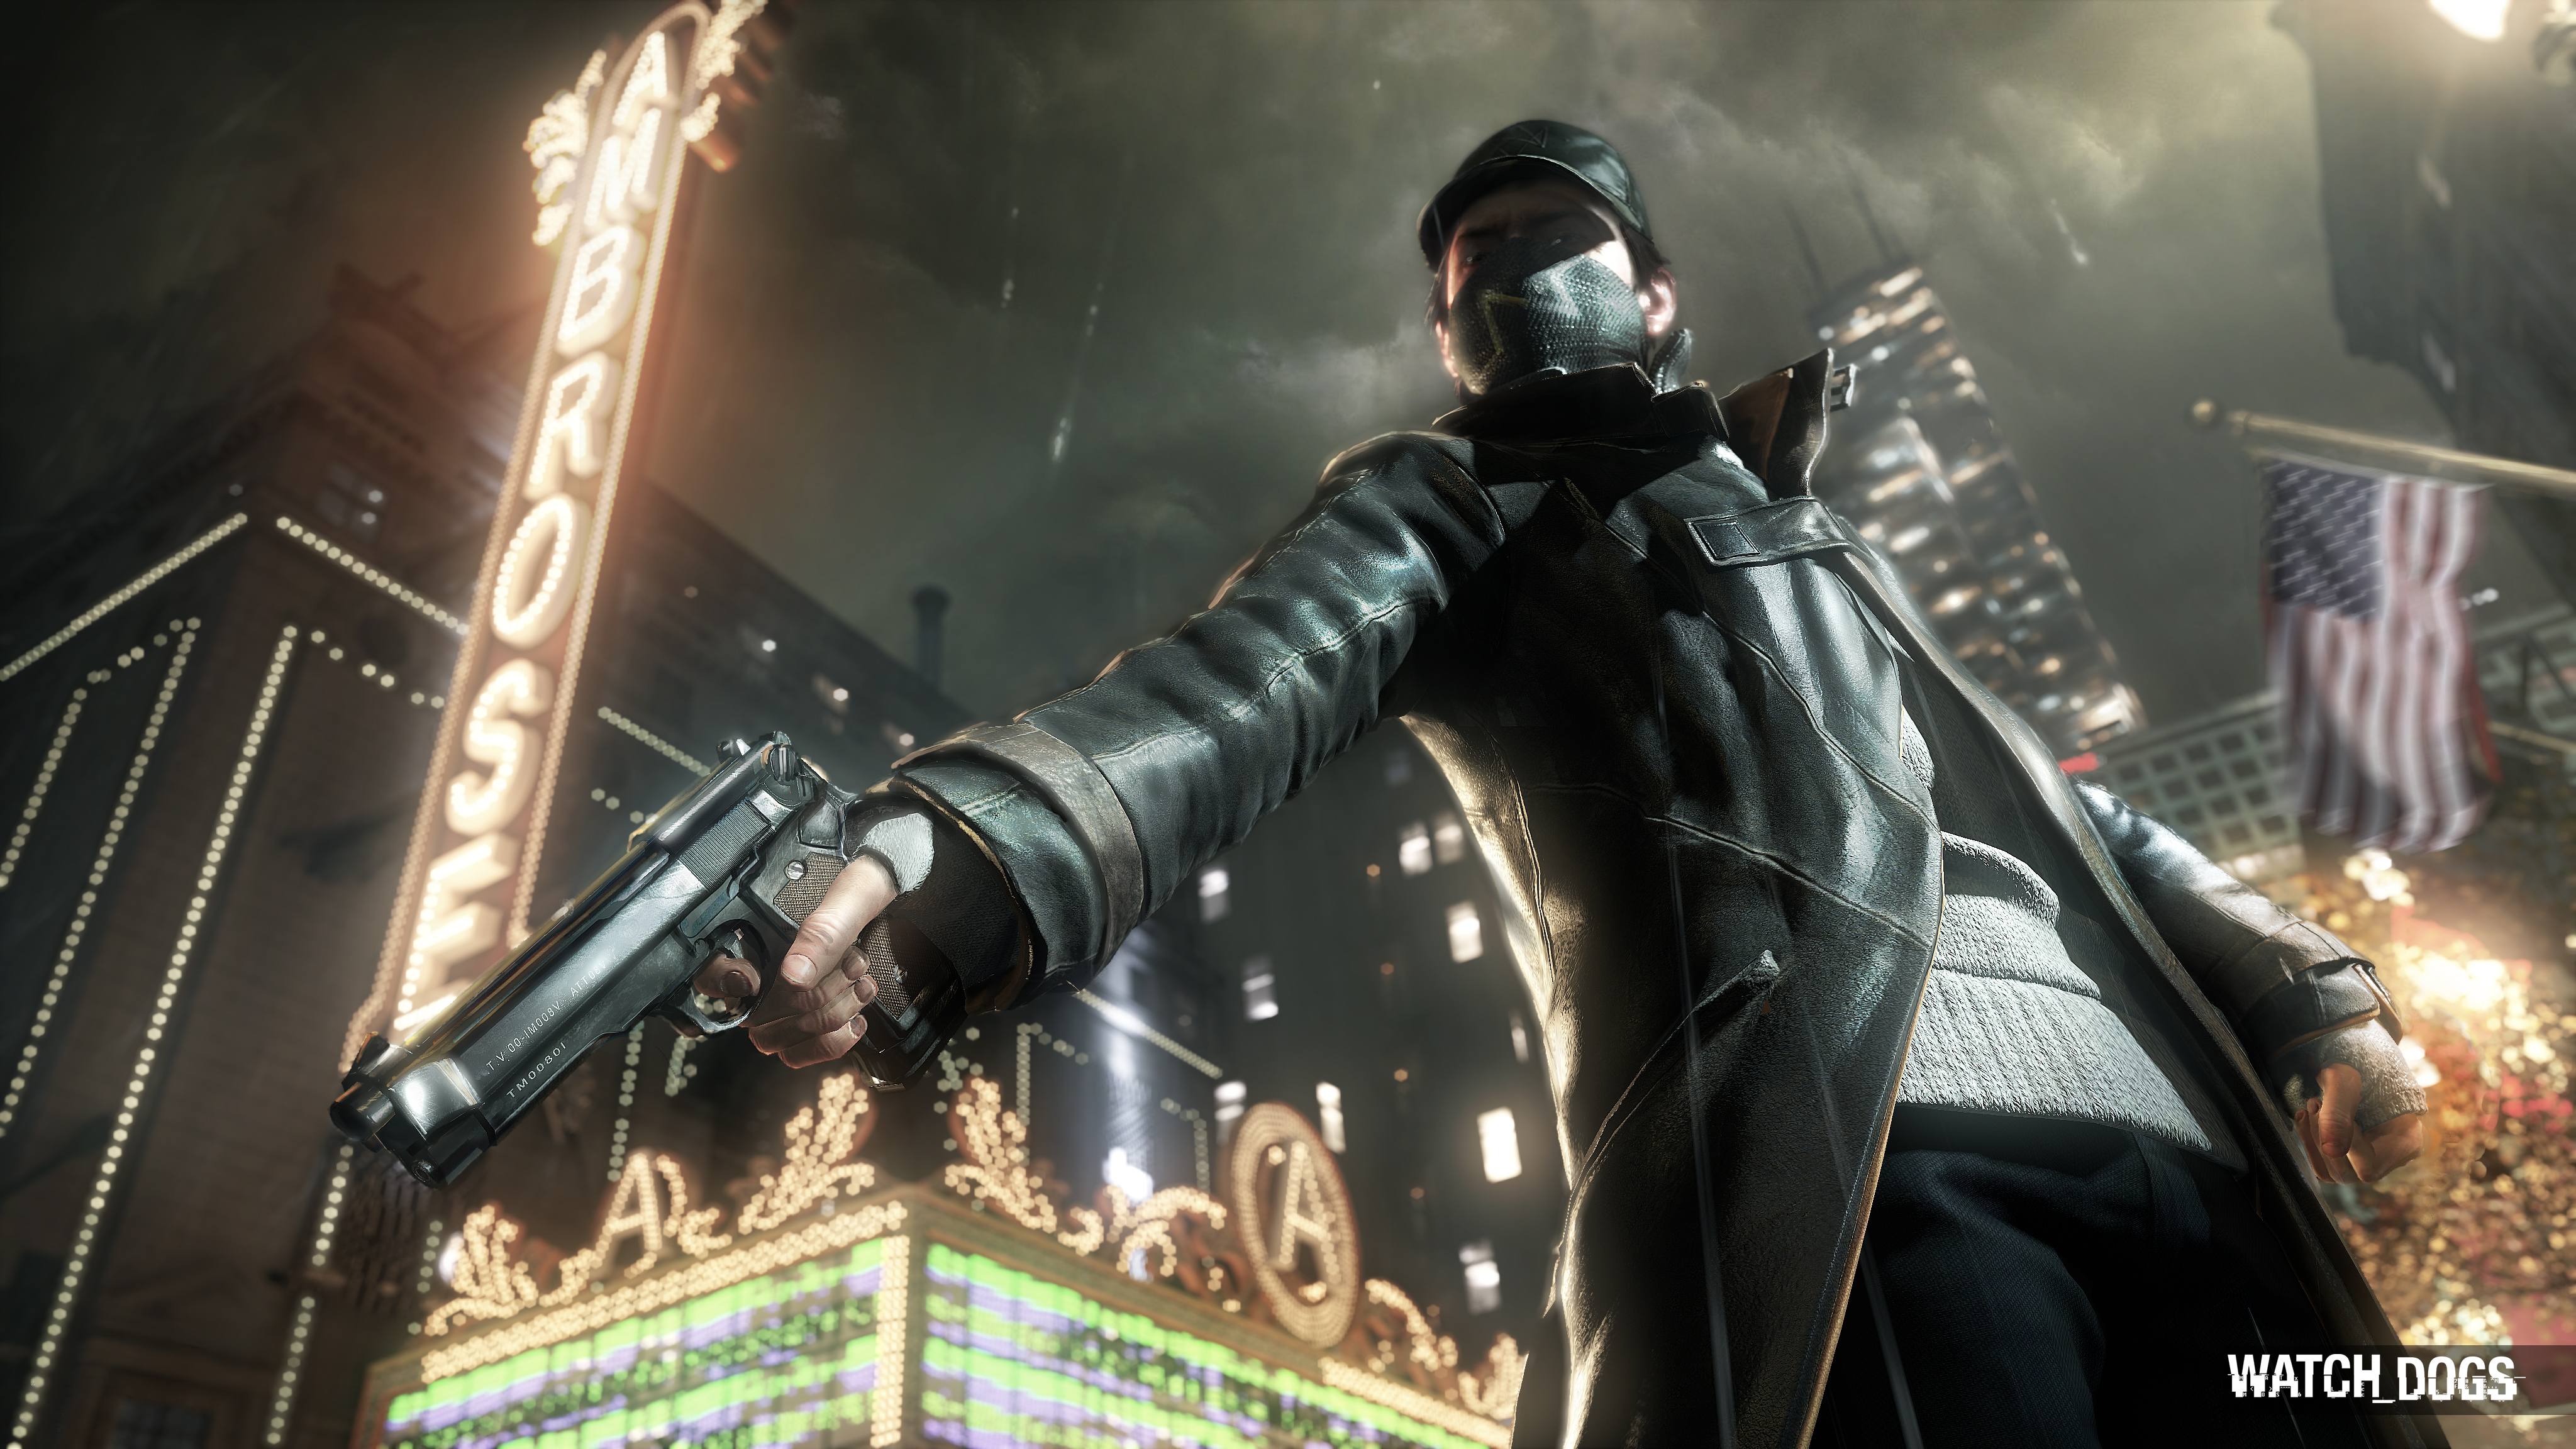 newUploads_2012_0604_d53950c32a4756348407f3d01cceb1ad_120604_4pmPST_WatchDogs_screenHR1